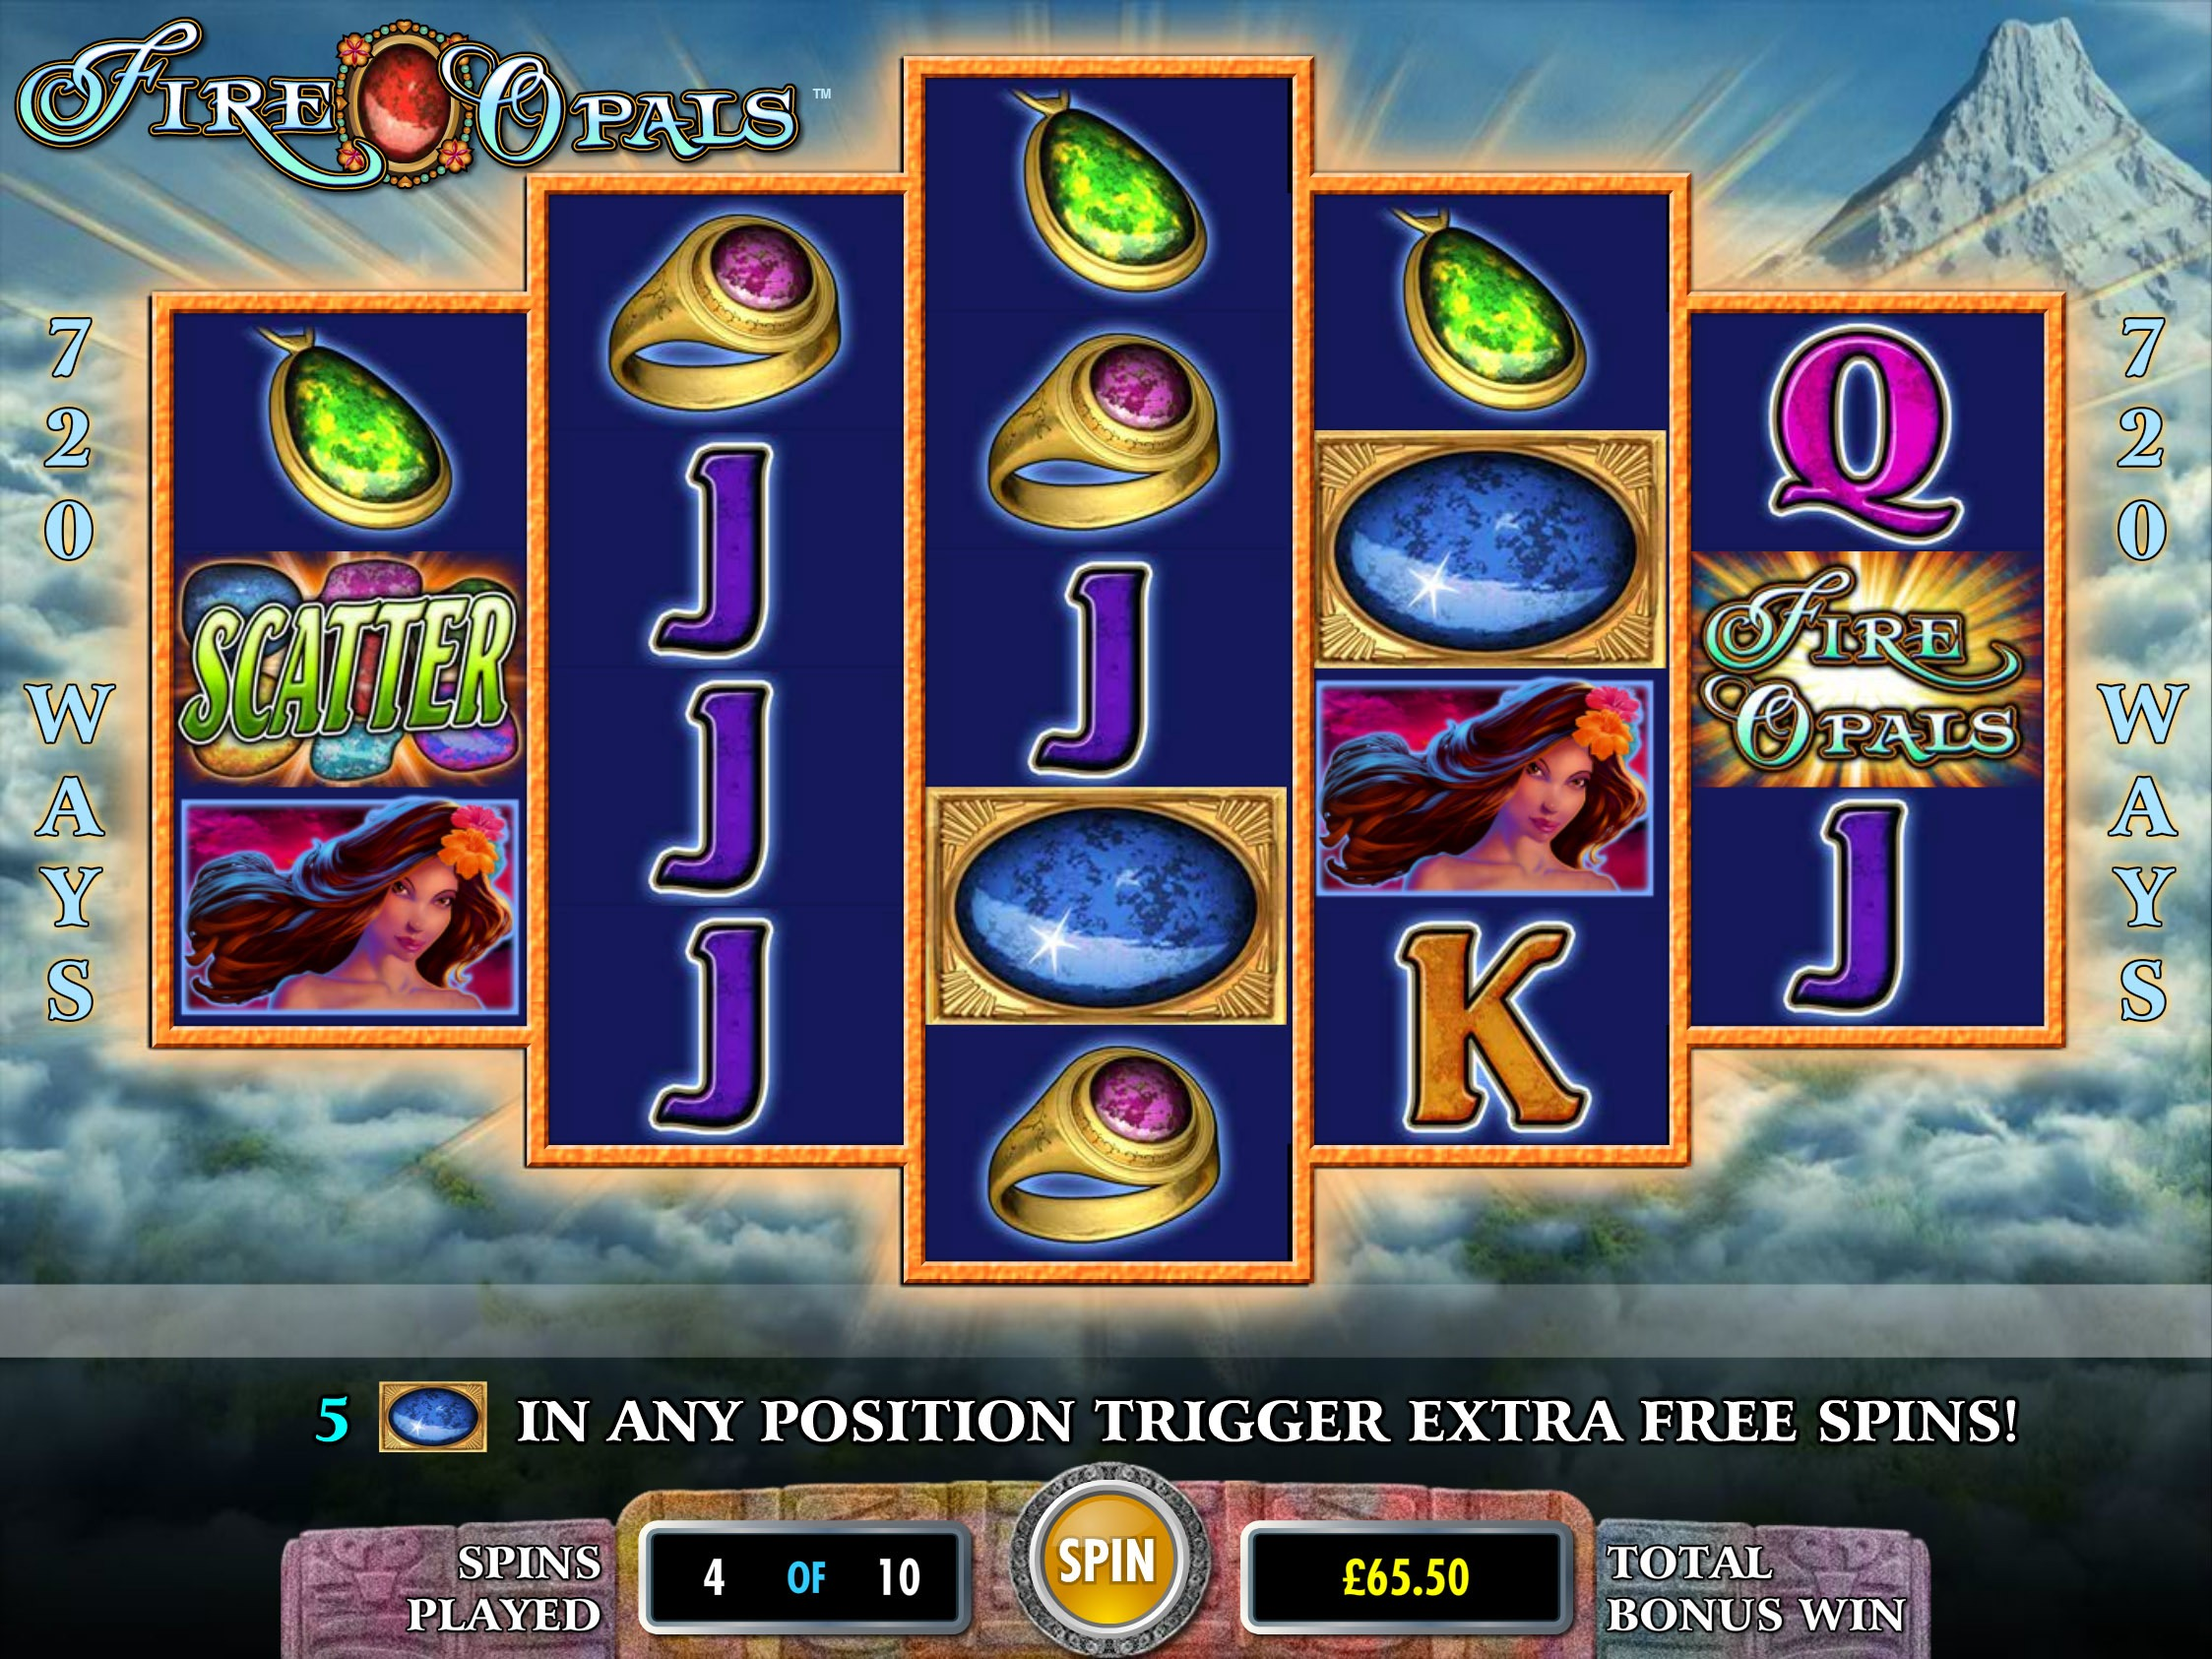 fire opals slot game preview